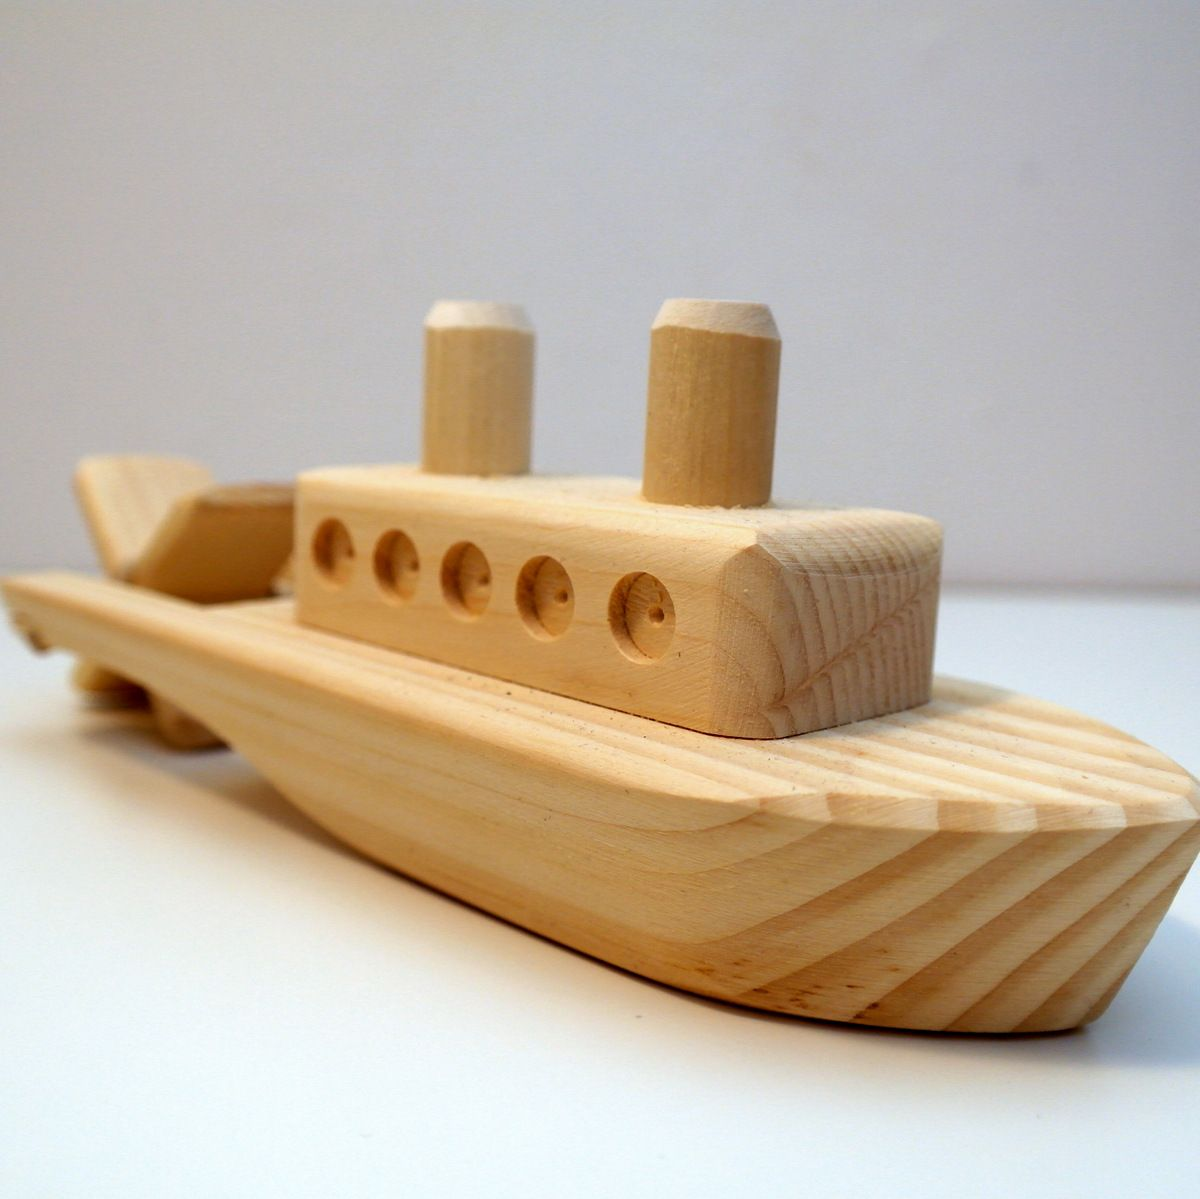 Our Wooden Show Boat Toy Is Styled After The Traditional Steam Powered Riverboats With Paddlewheels That Would Up And Down Large Lakes Rivers